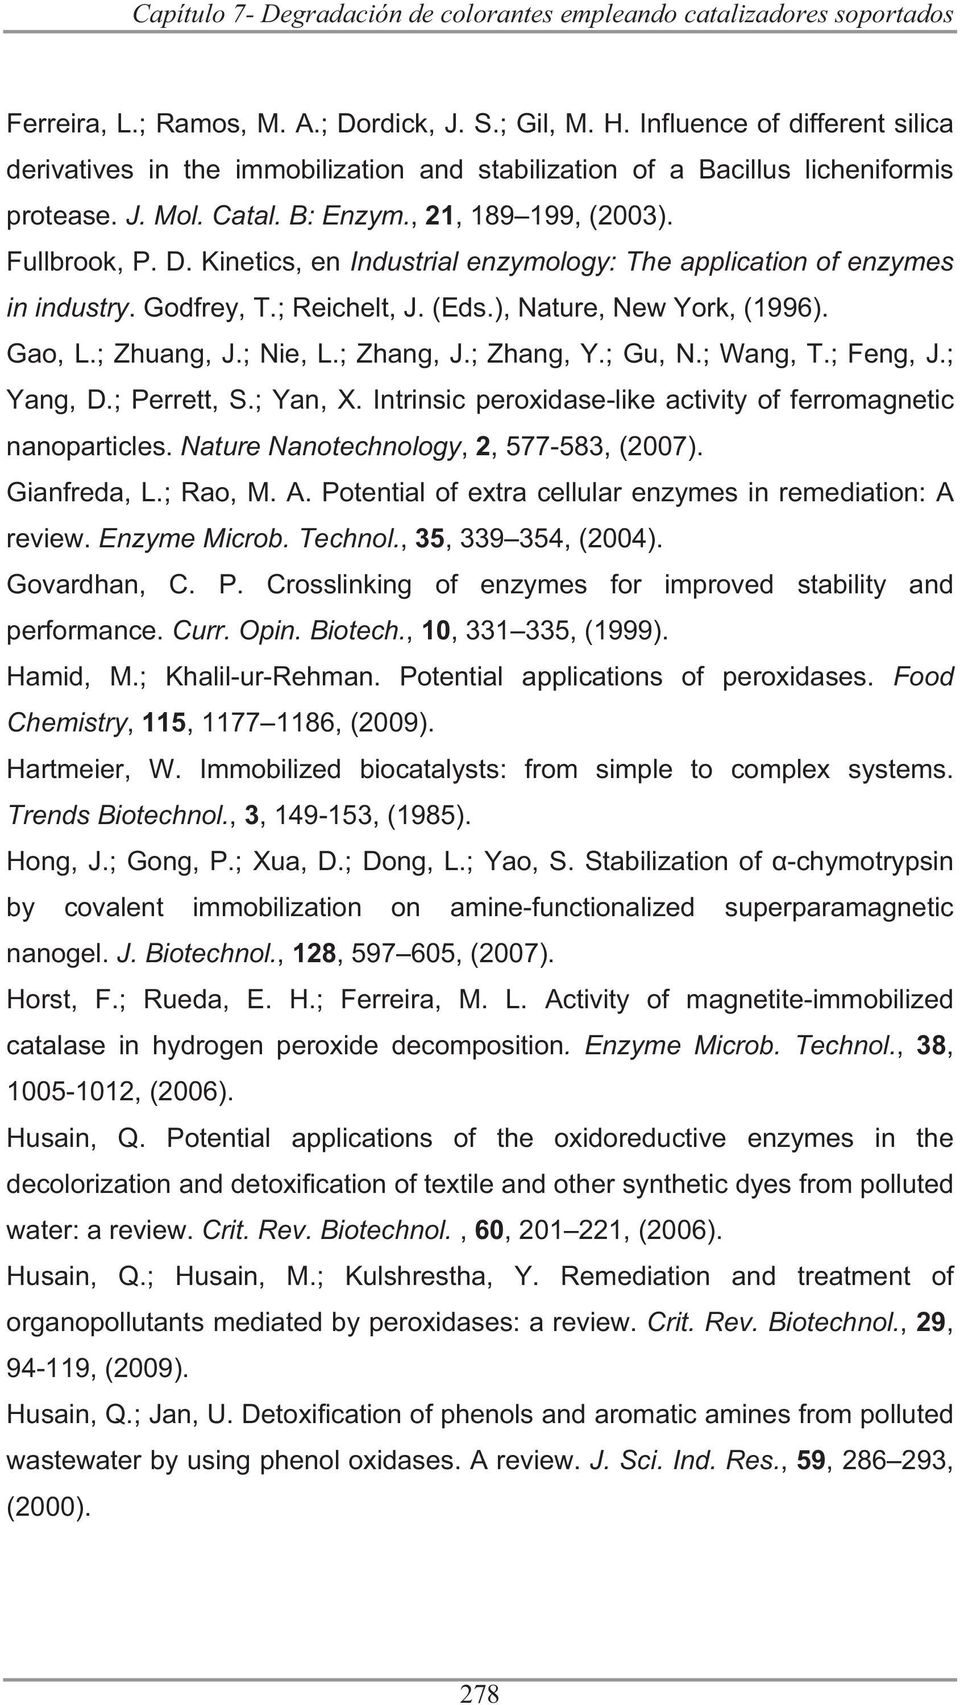 Kinetics, en Industrial enzymology: The application of enzymes in industry. Godfrey, T.; Reichelt, J. (Eds.), Nature, New York, (1996). Gao, L.; Zhuang, J.; Nie, L.; Zhang, J.; Zhang, Y.; Gu, N.